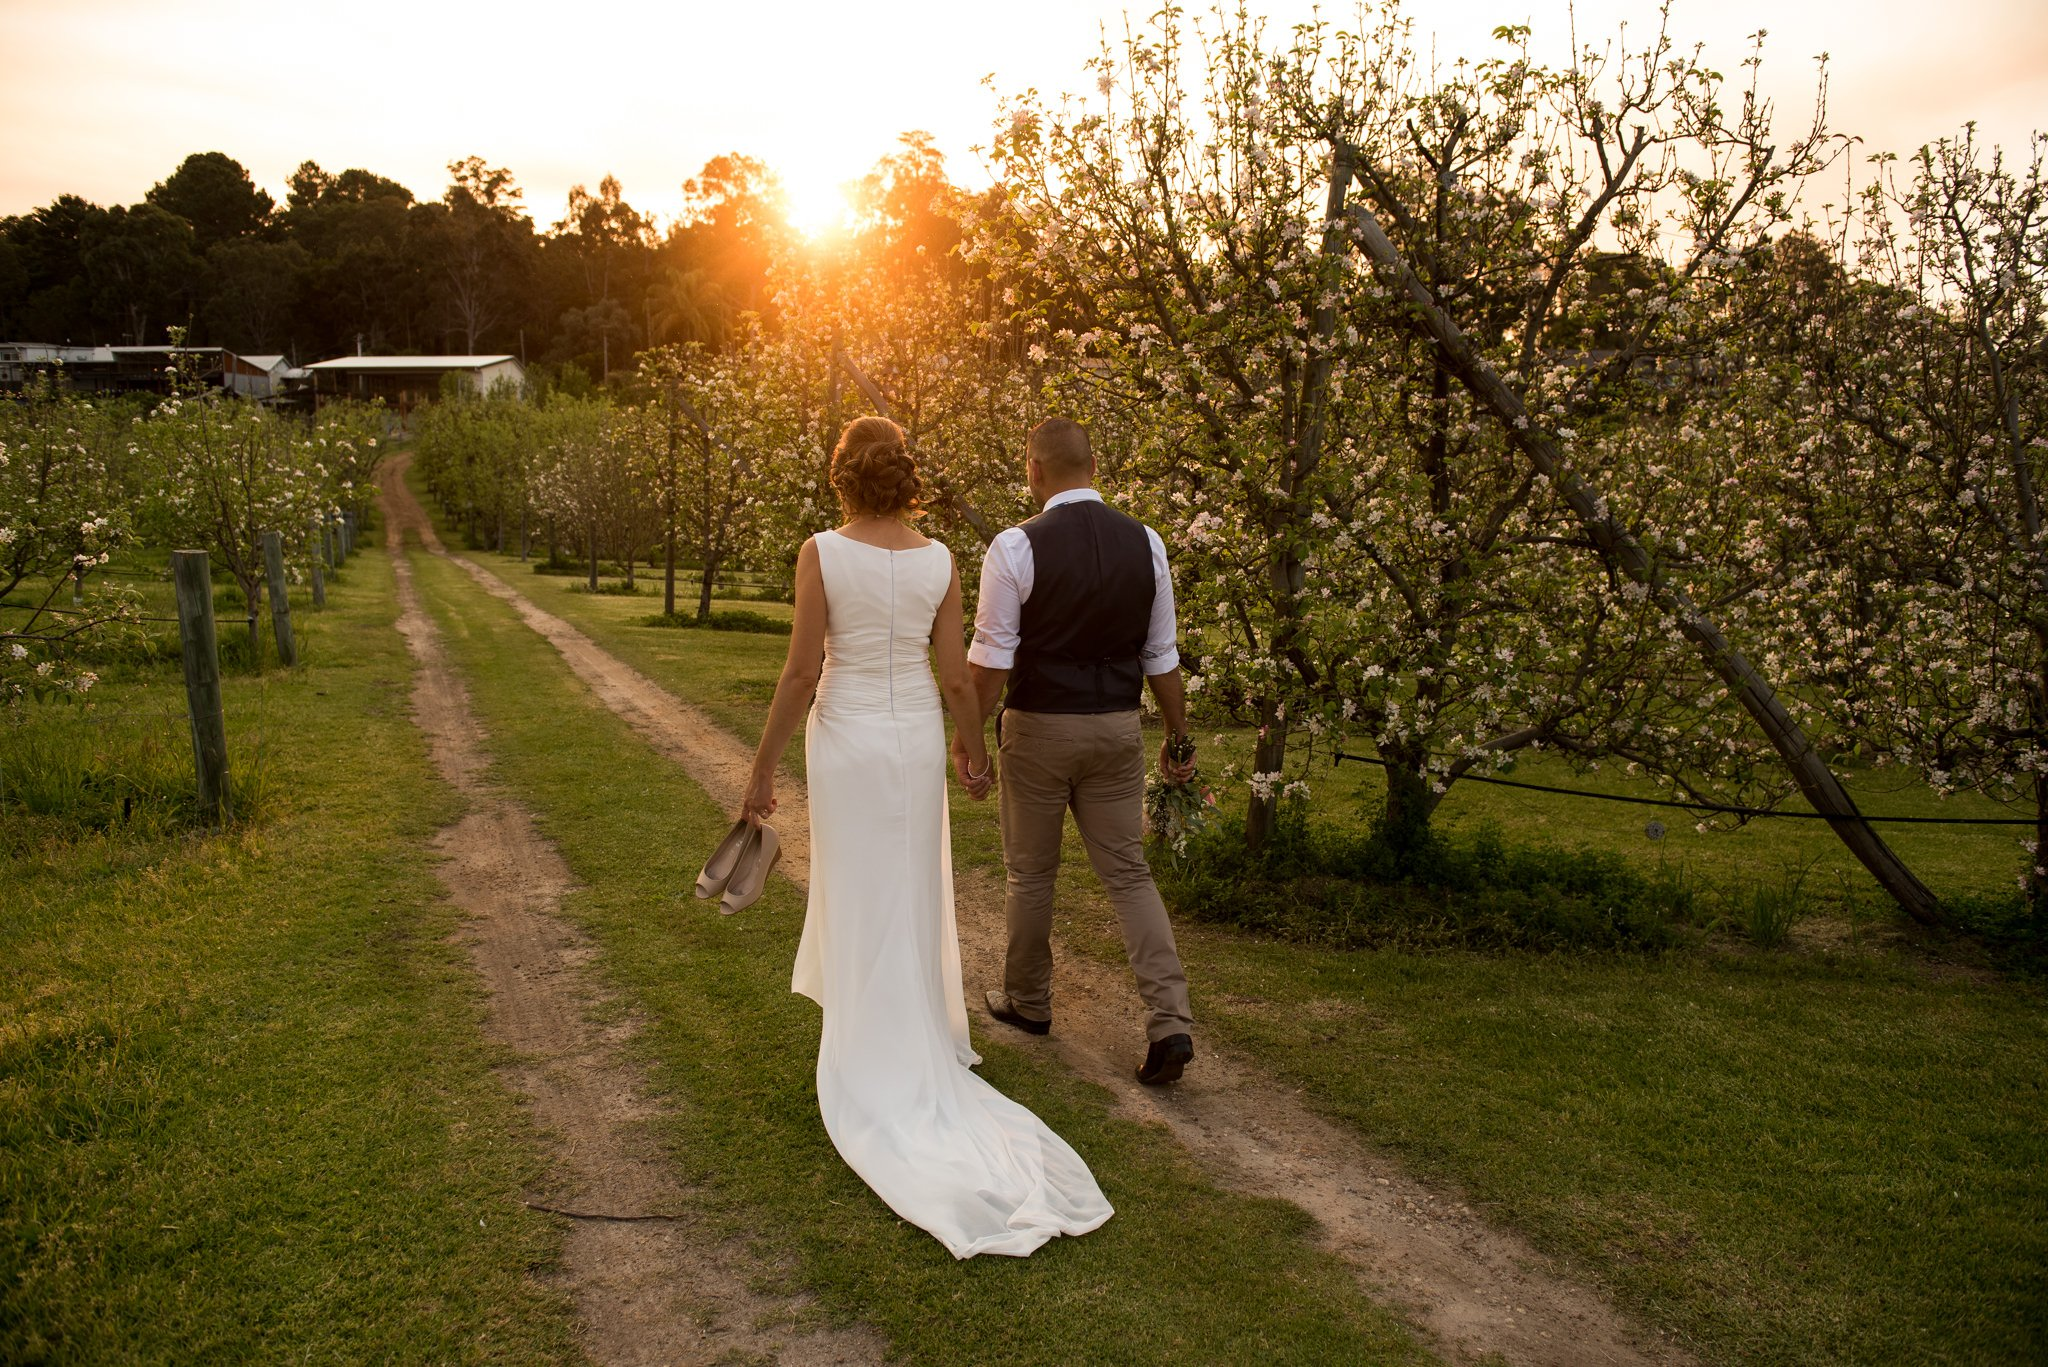 newlyweds walking into the sunset